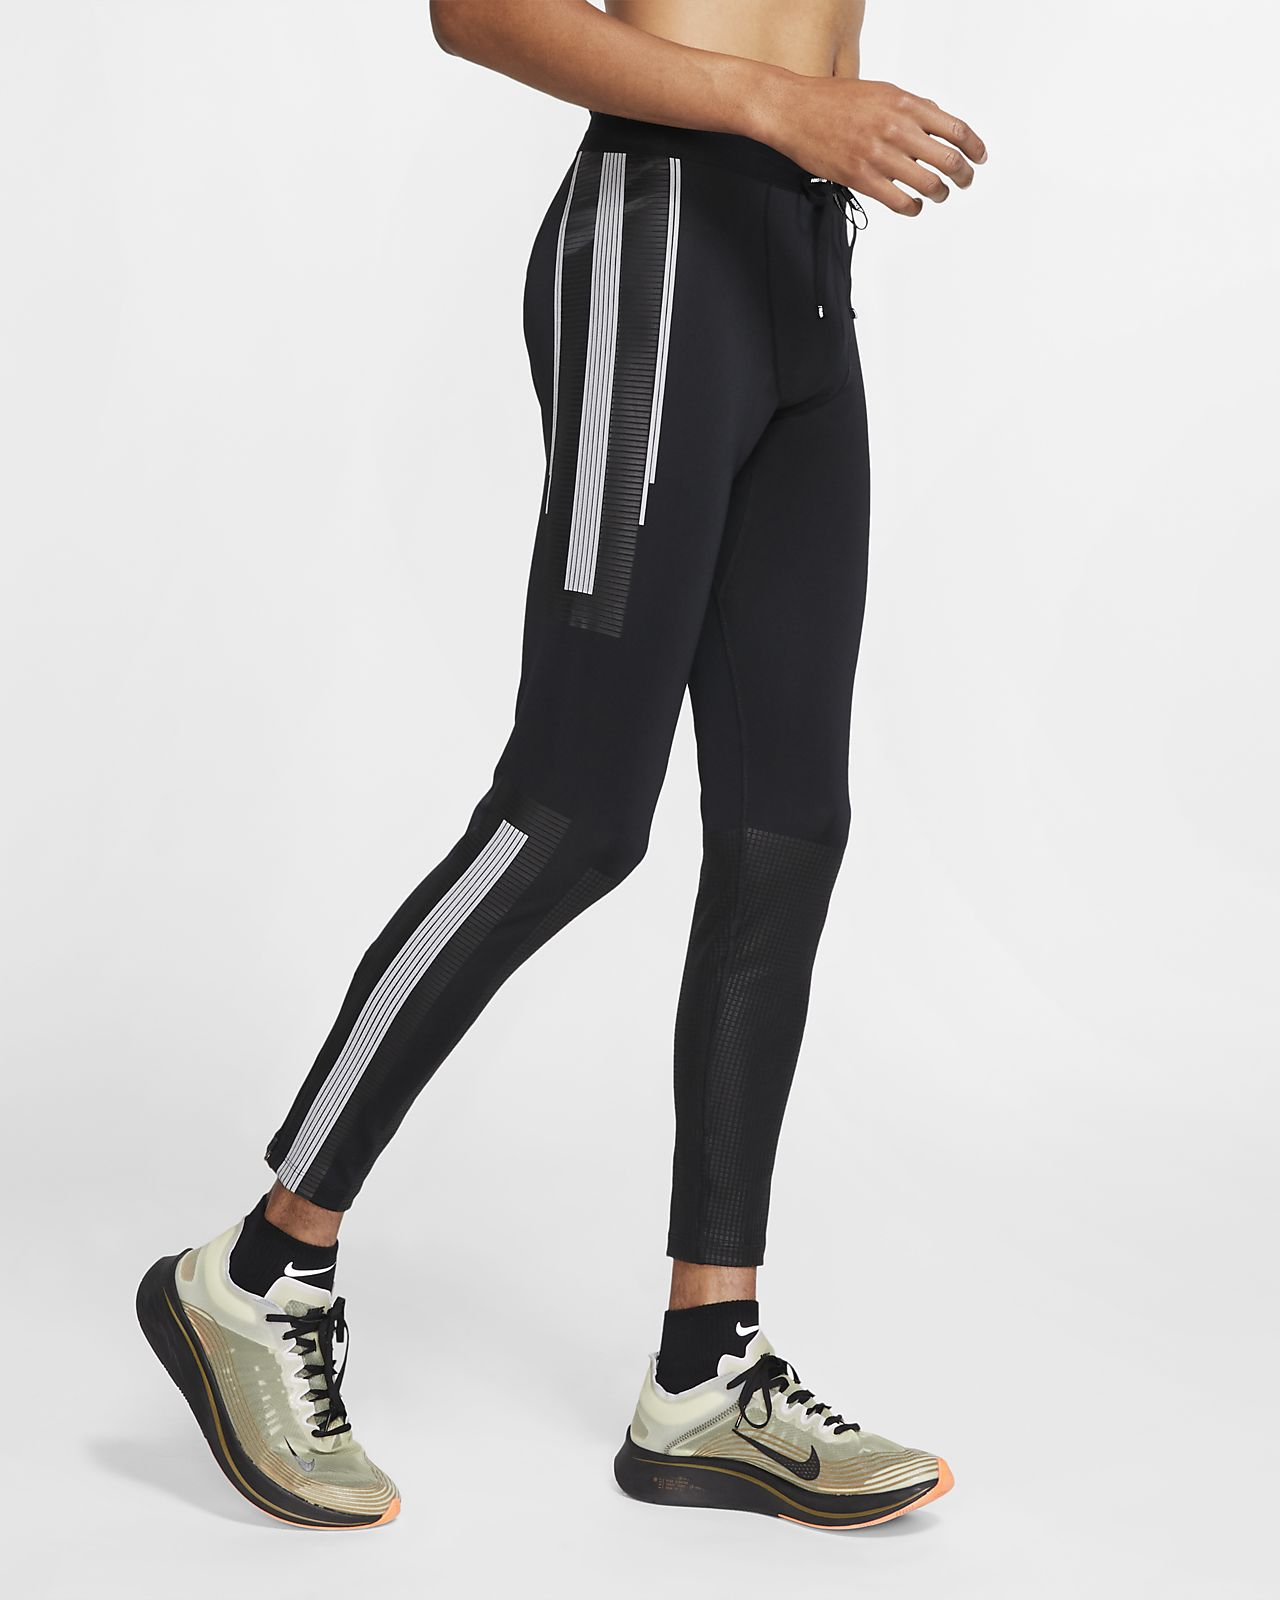 Nike Power Flash Lauftights für Herren